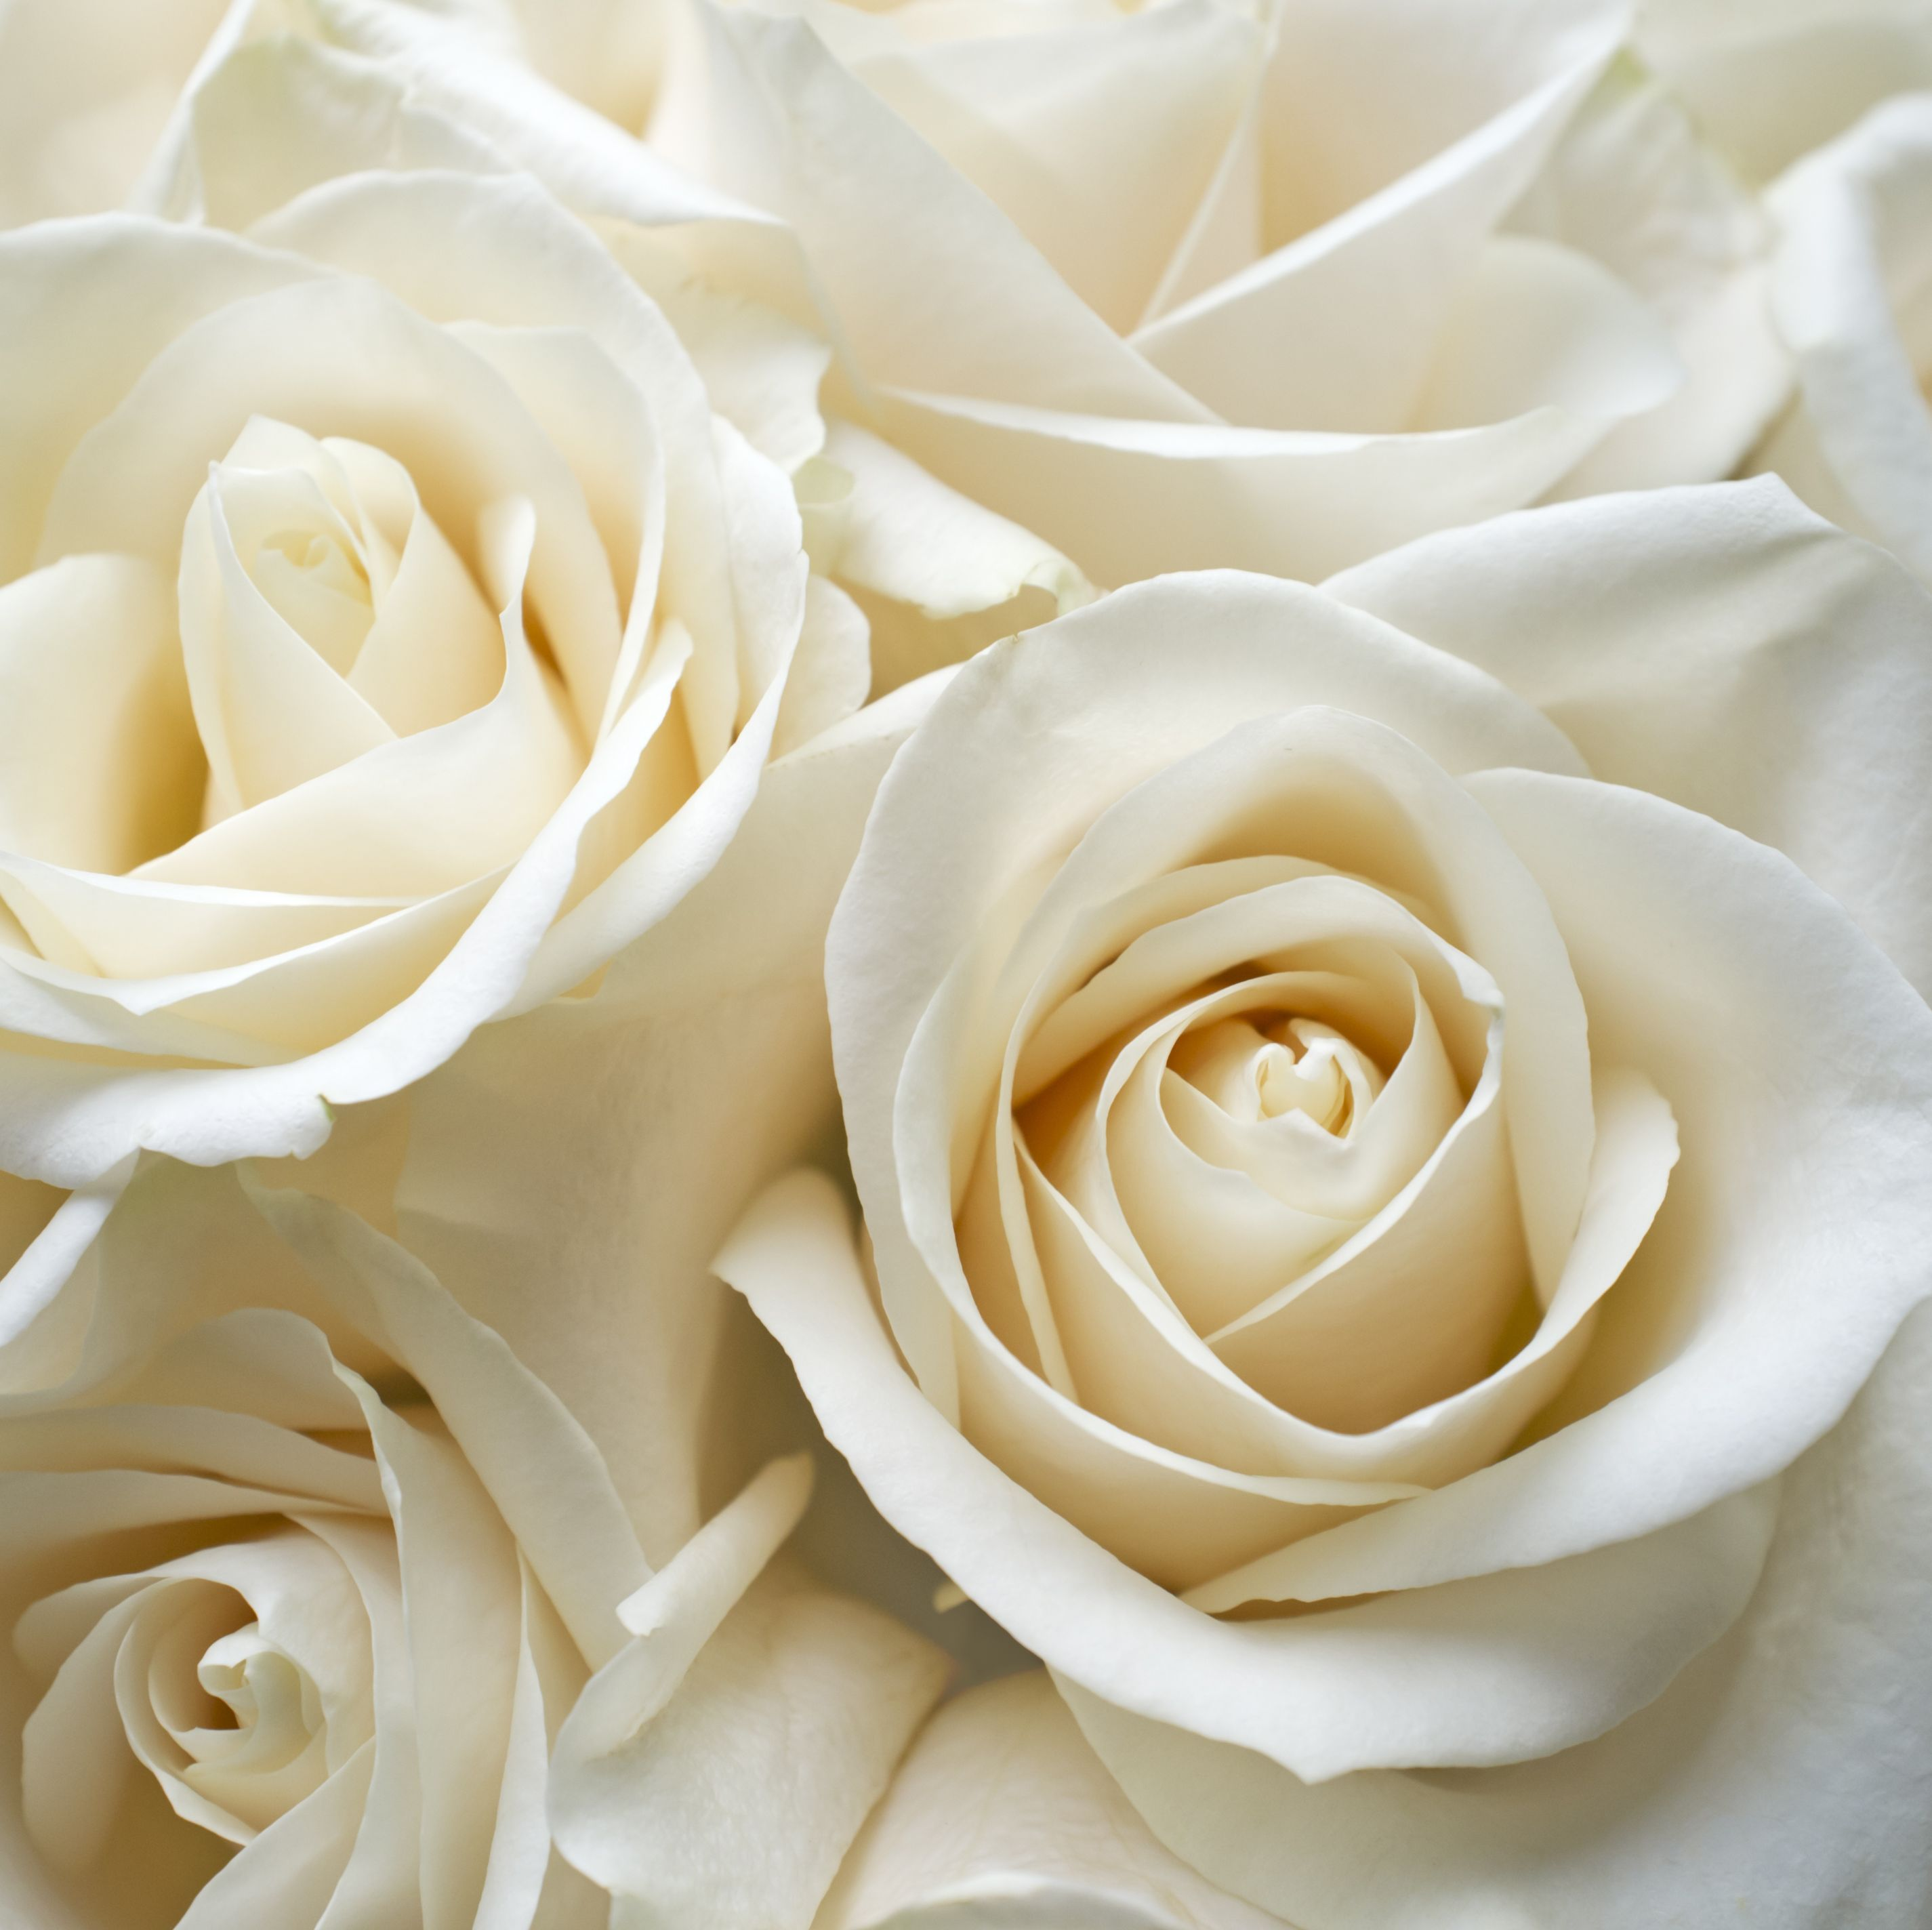 White Roses - Rose Color Meanings